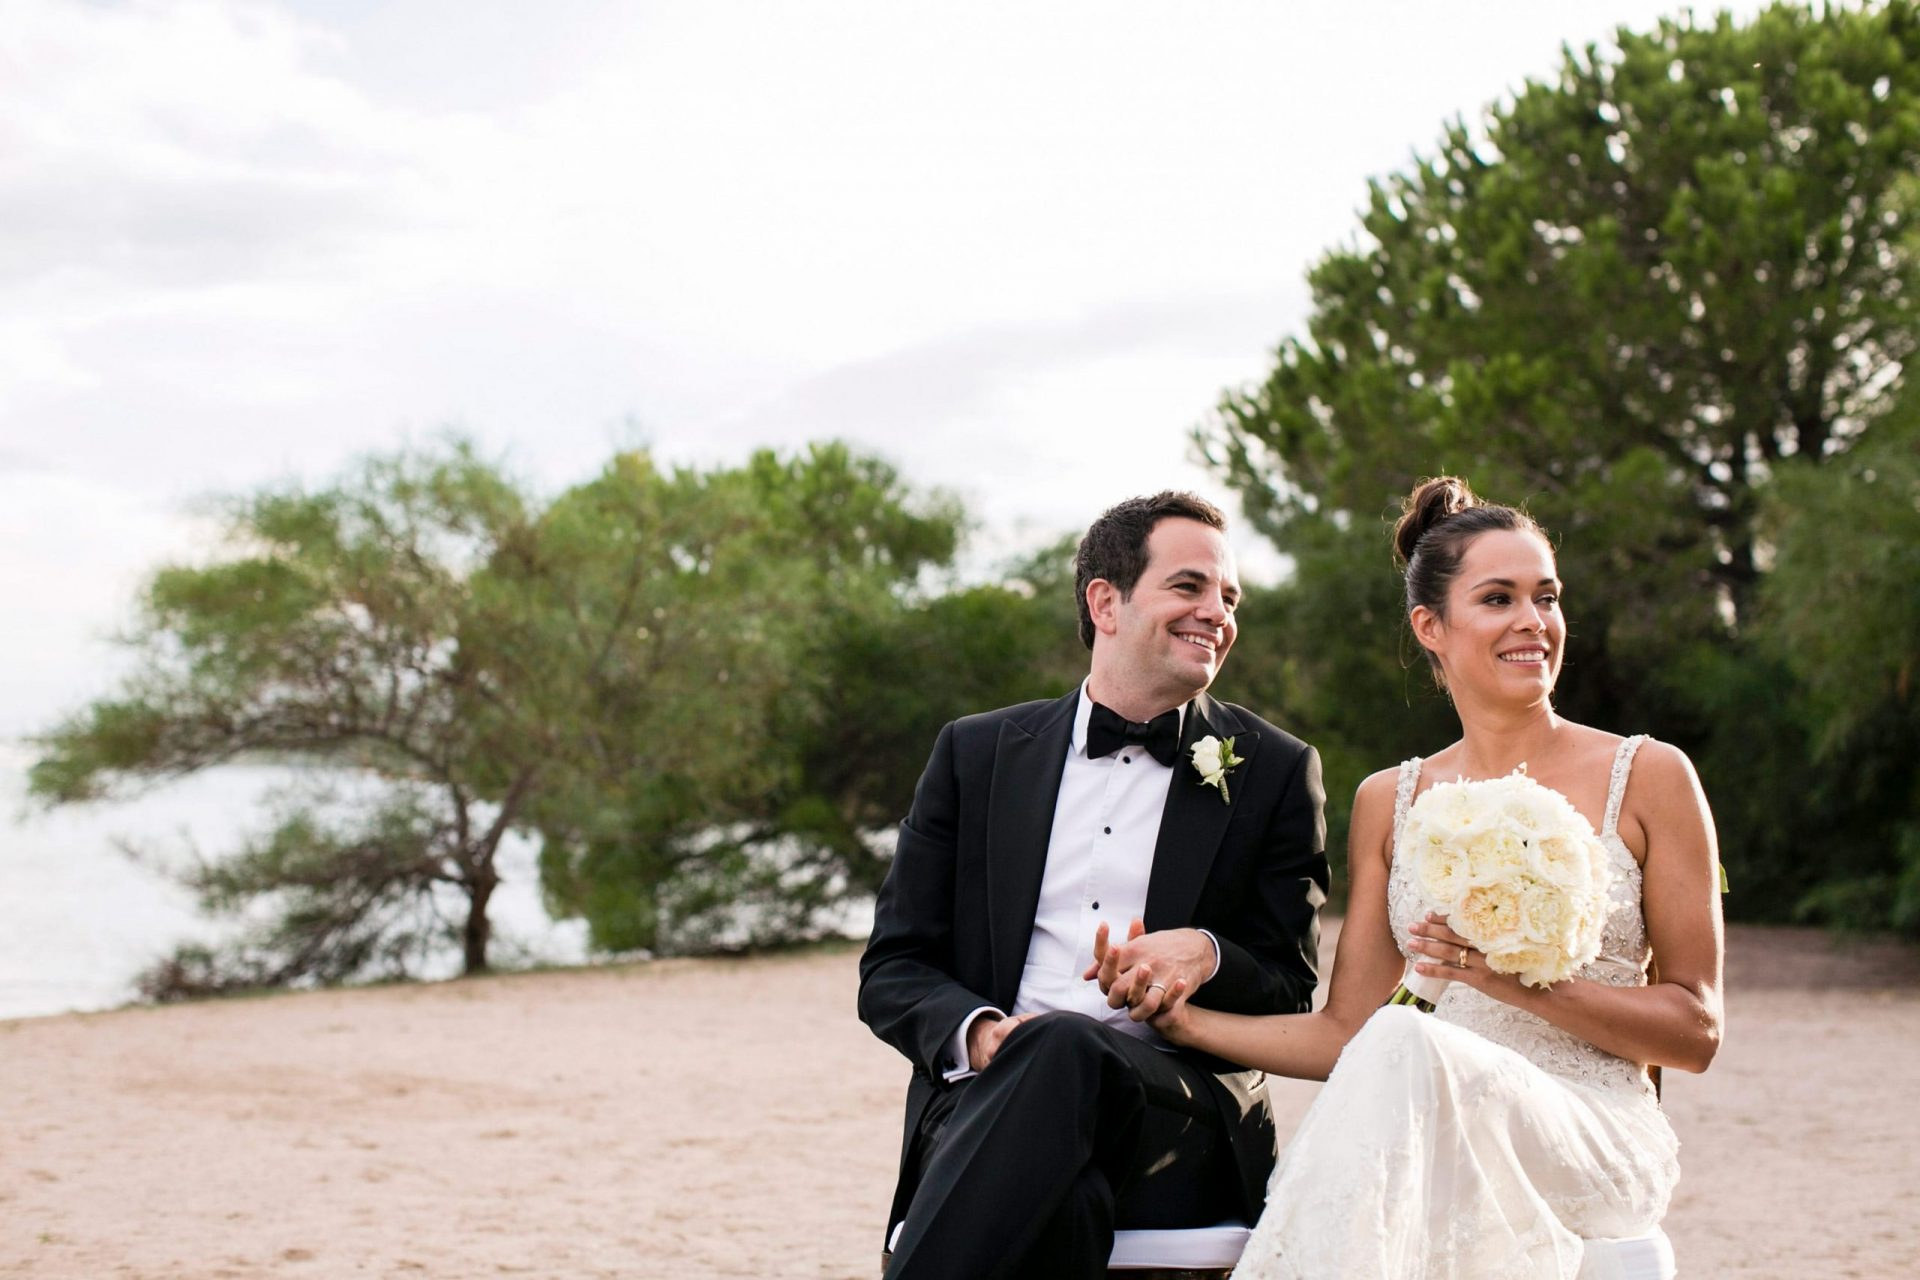 Lisa and Daniel, luxury wedding in Cala di Volpe, the bride and the groom